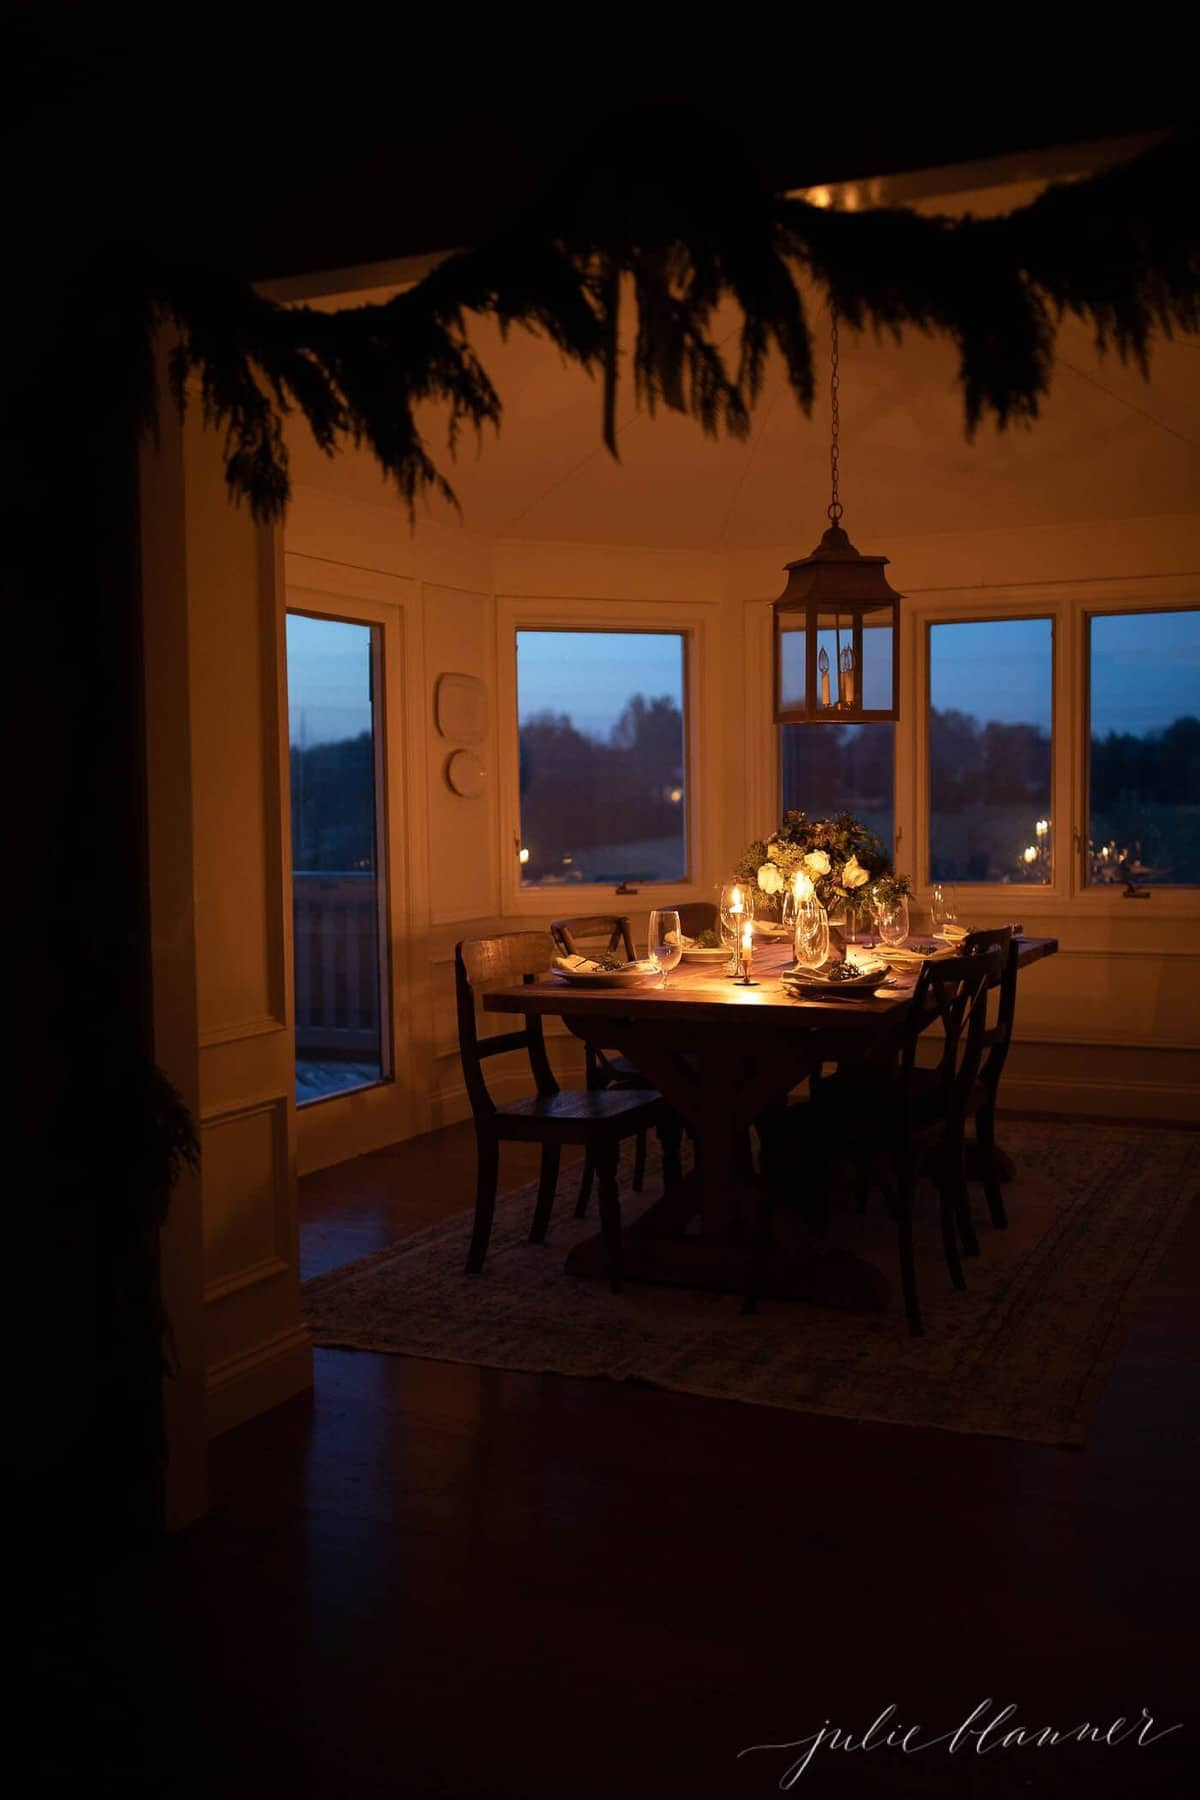 Dining room at night, framed by a garland around the entryway.